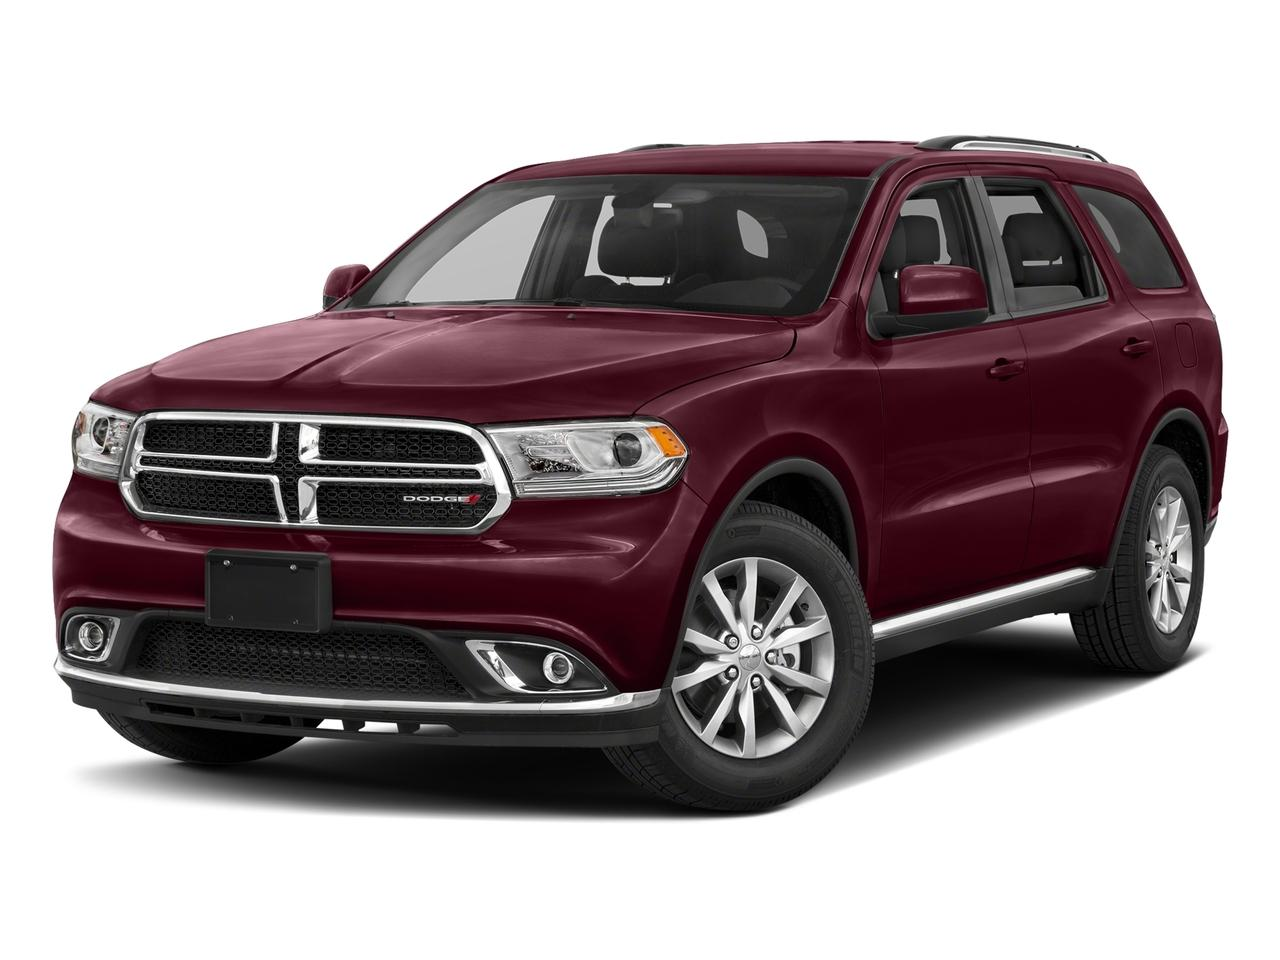 2017 Dodge Durango Vehicle Photo in Killeen, TX 76541